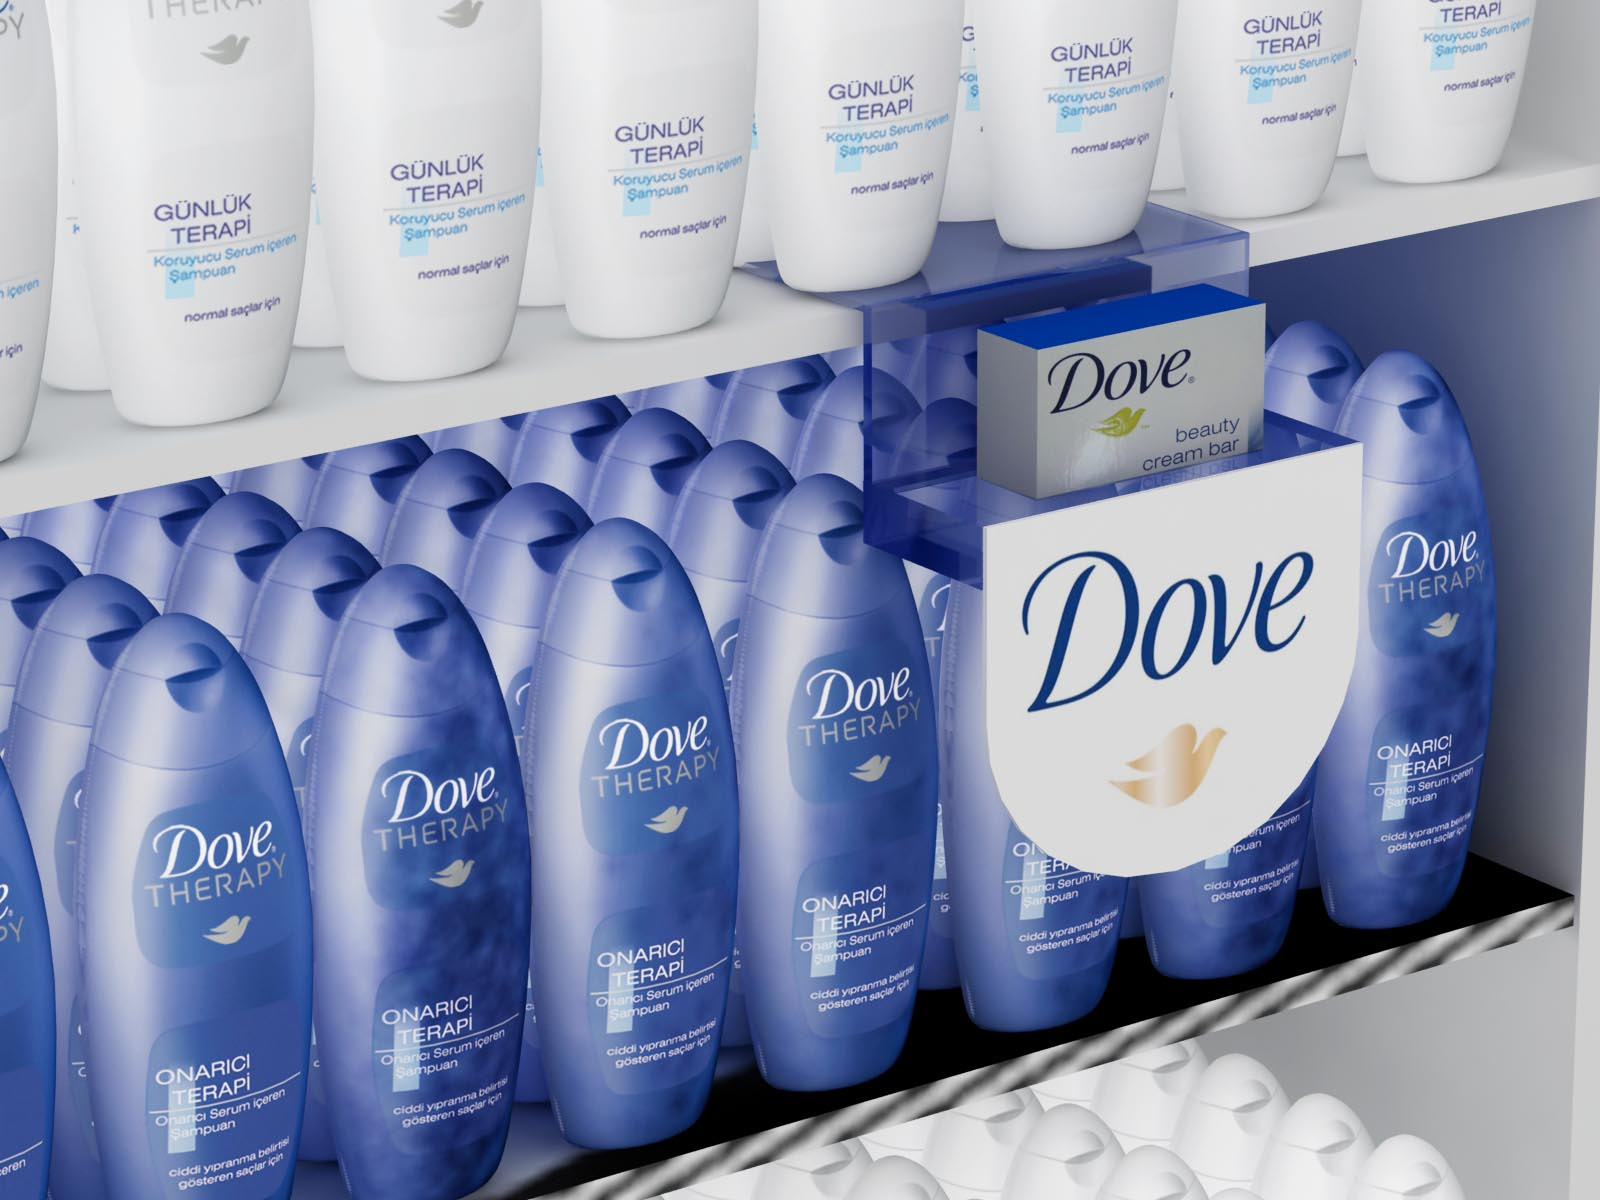 Dove Coupons (Soap, Body Wash, Deodorant) - Printable Coupons 2018 - Free Dove Soap Coupons Printable